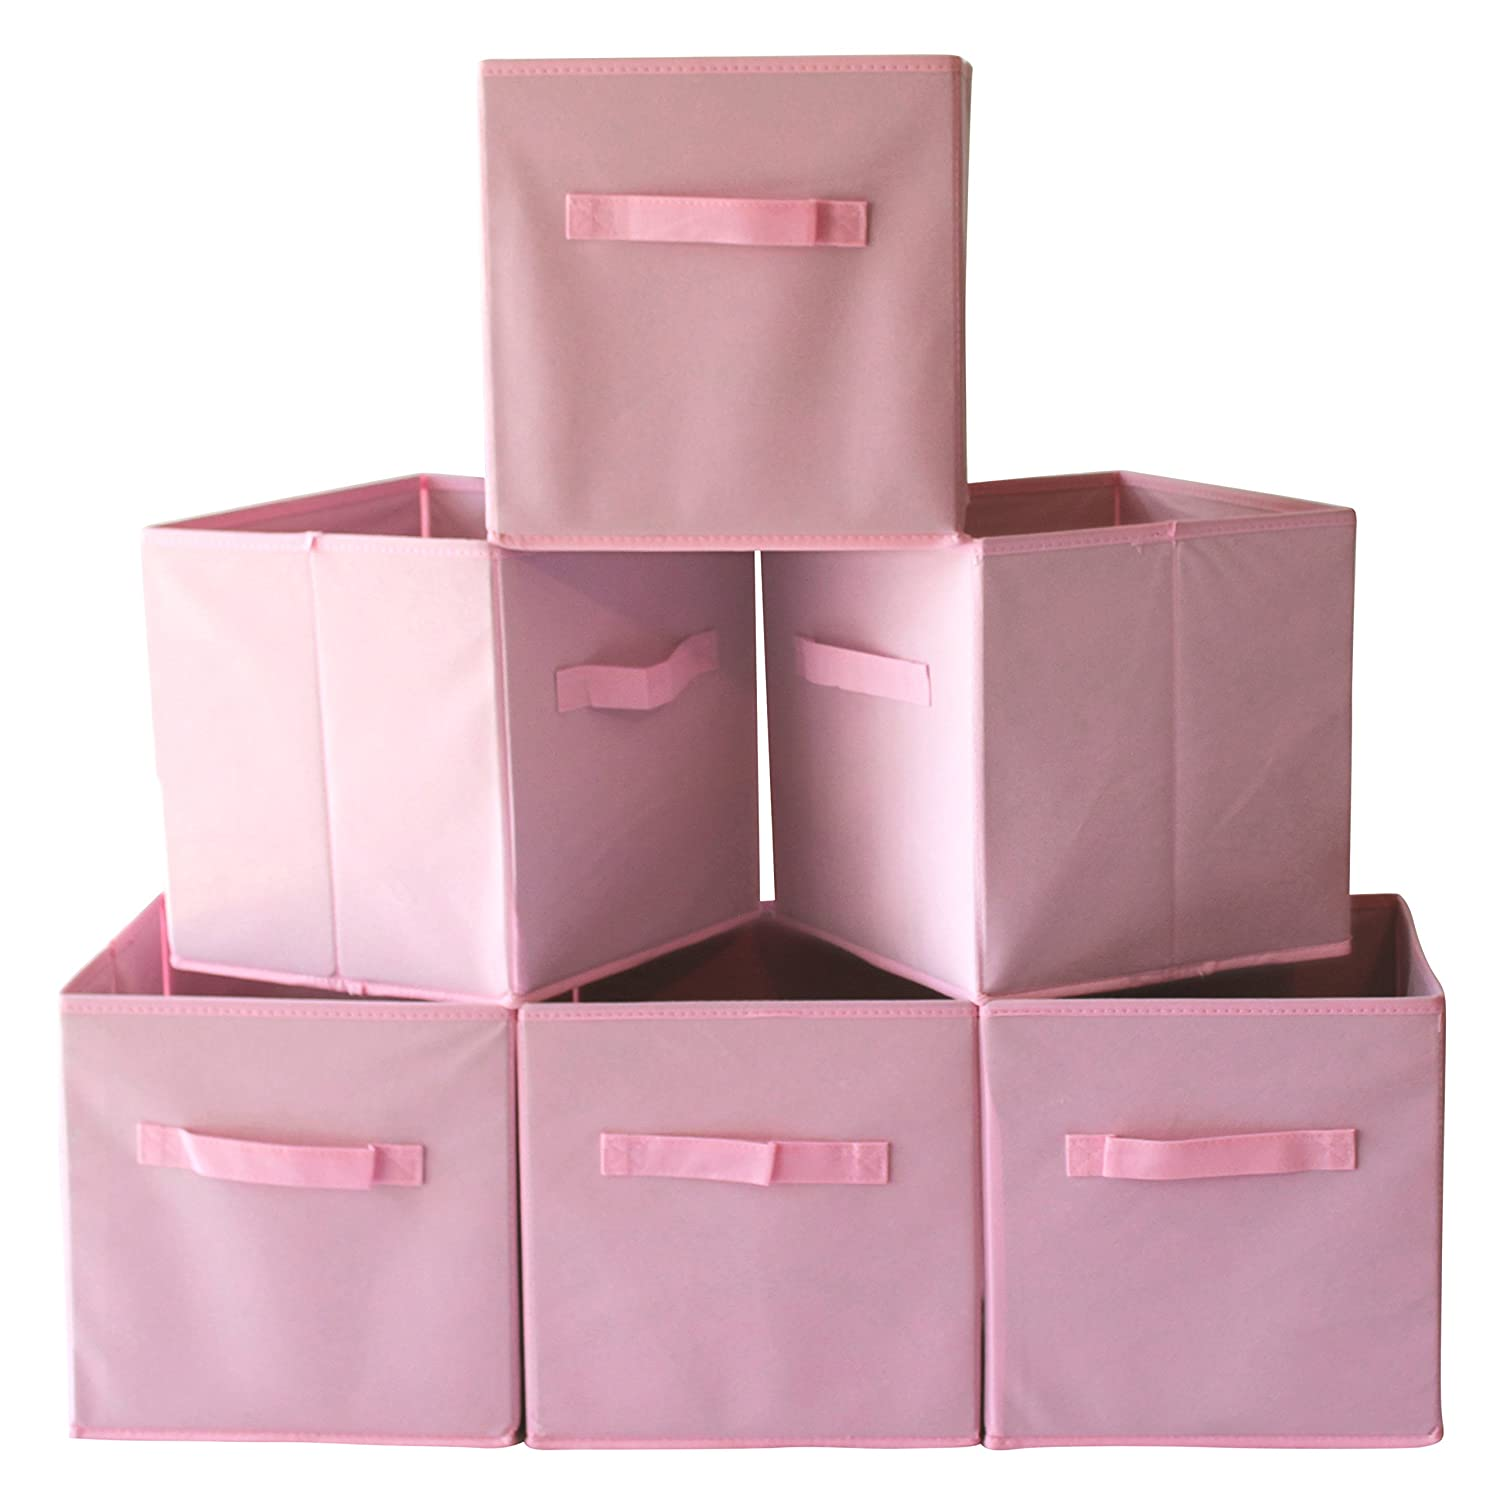 Fabric Cube Storage Bins (Set of 6) Foldable Baskets with Handles - Various Colors Available